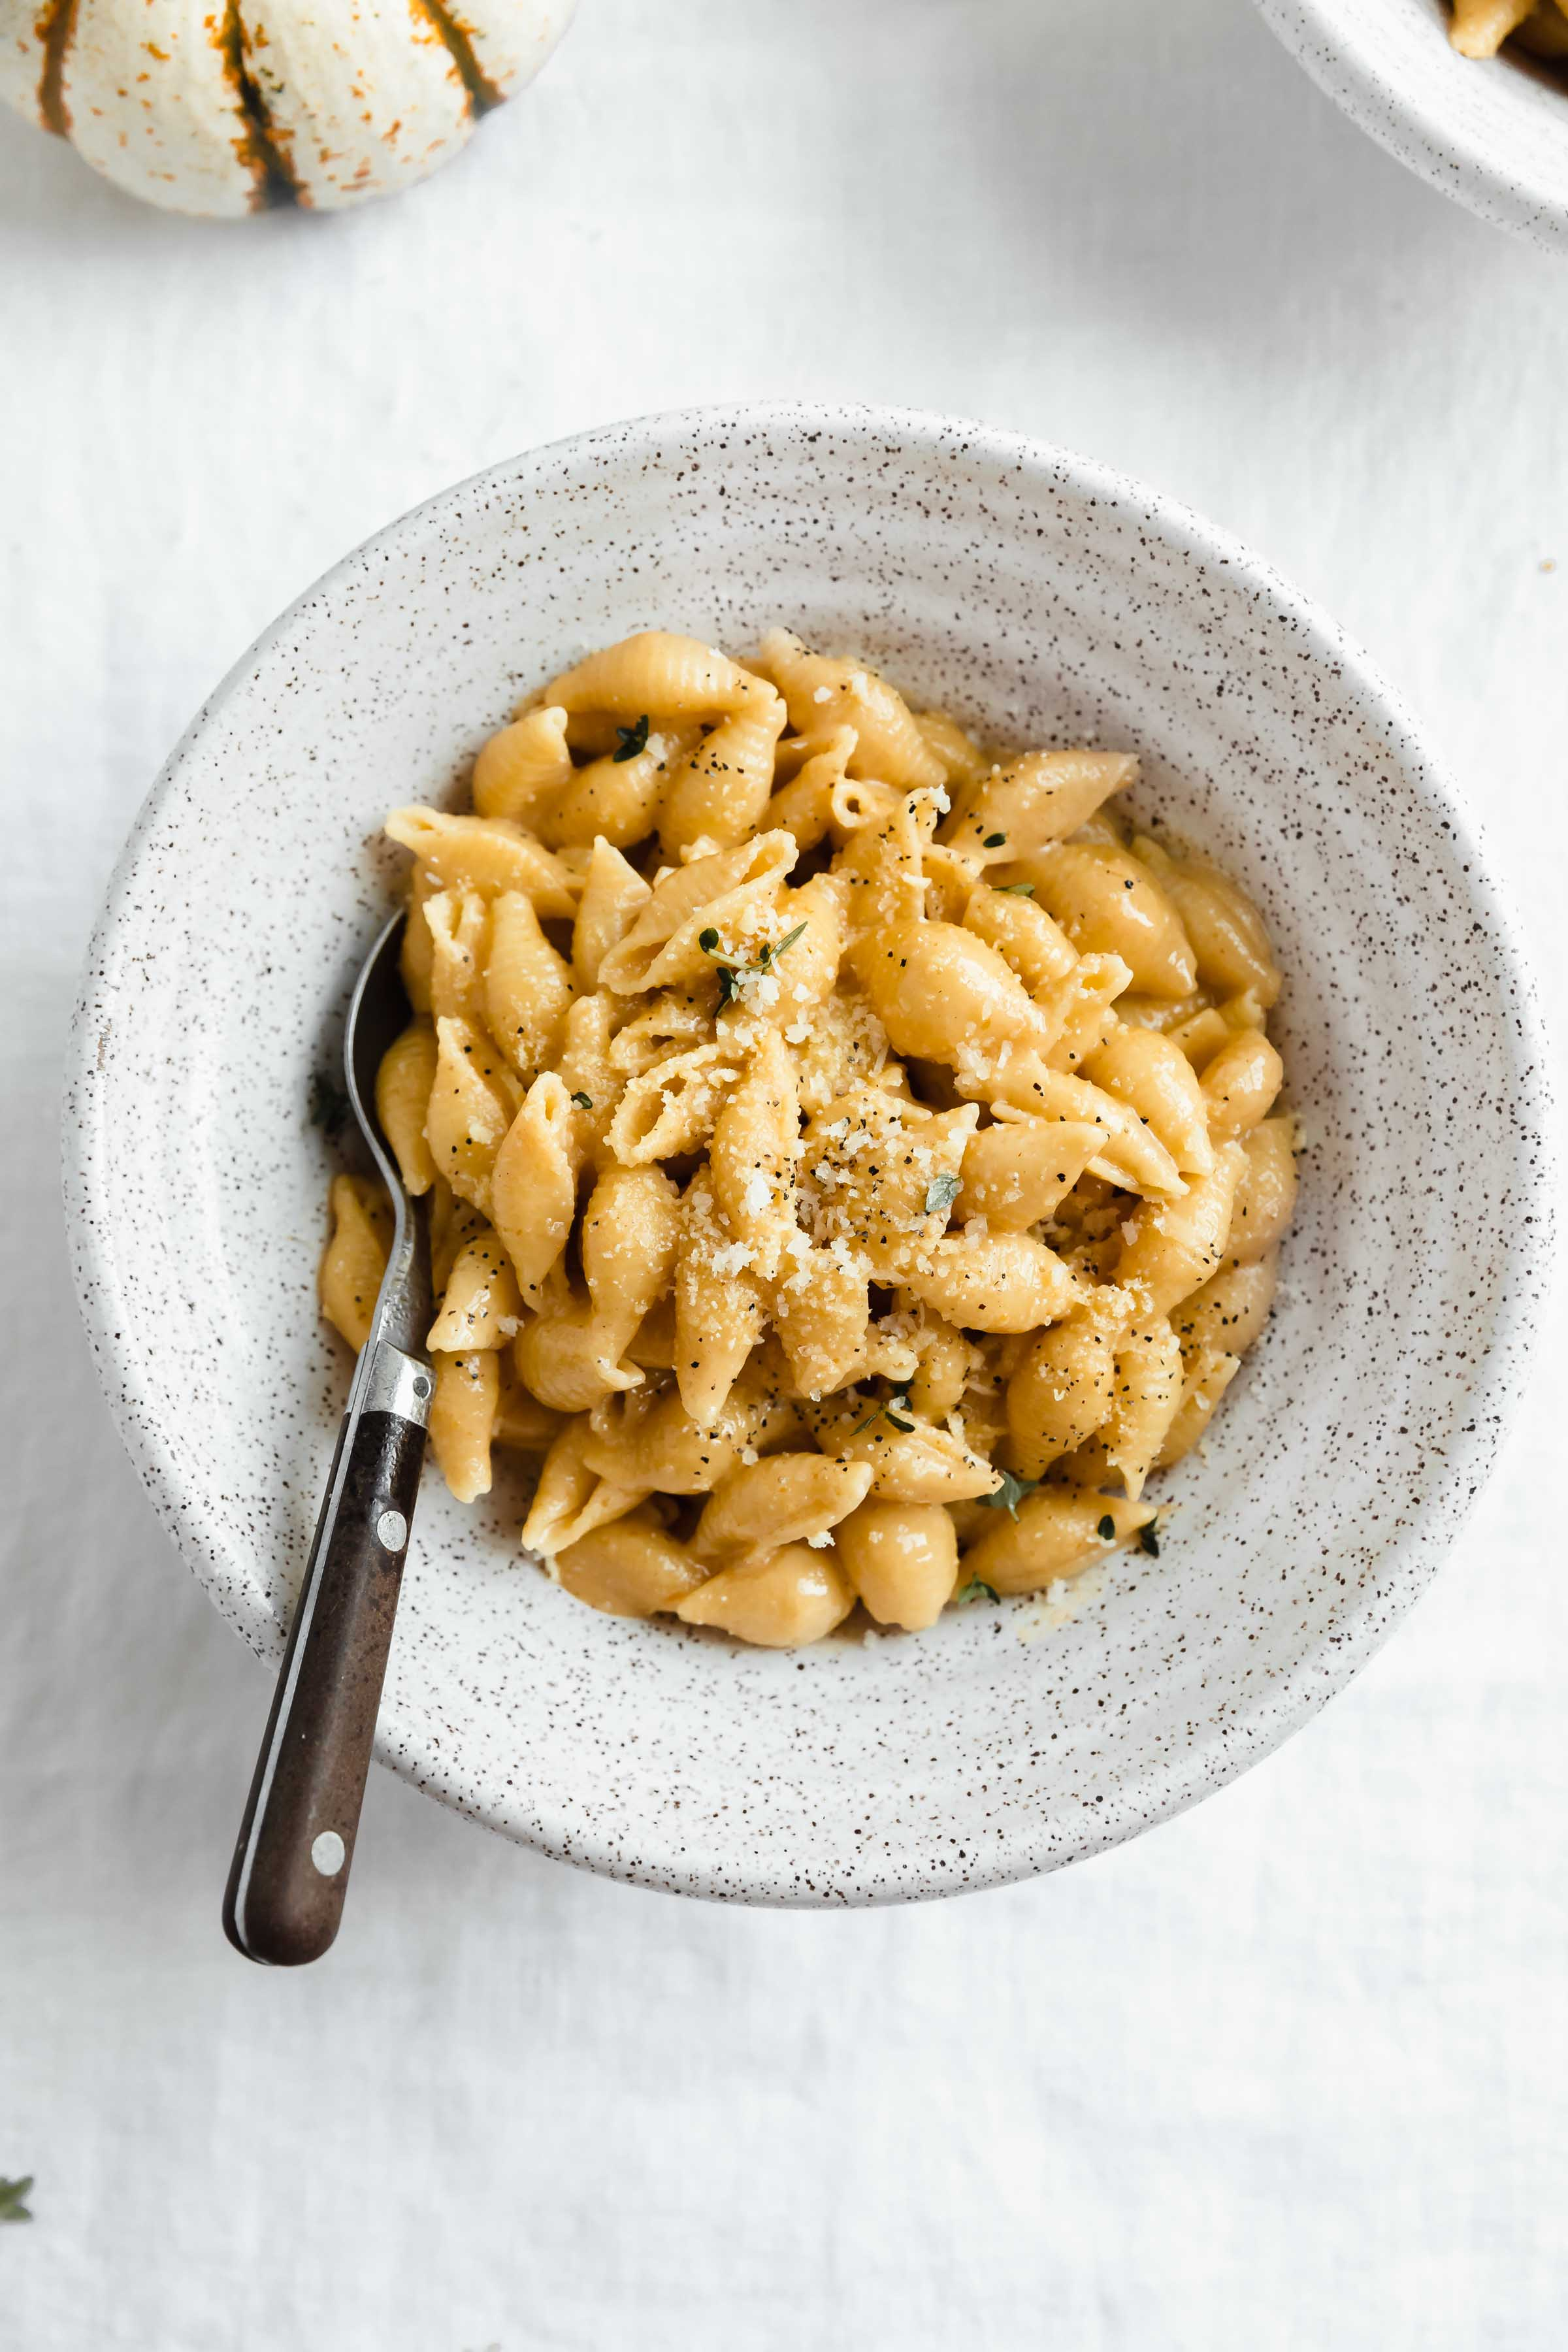 This cozy pumpkin mac and cheese tastes like a hug!